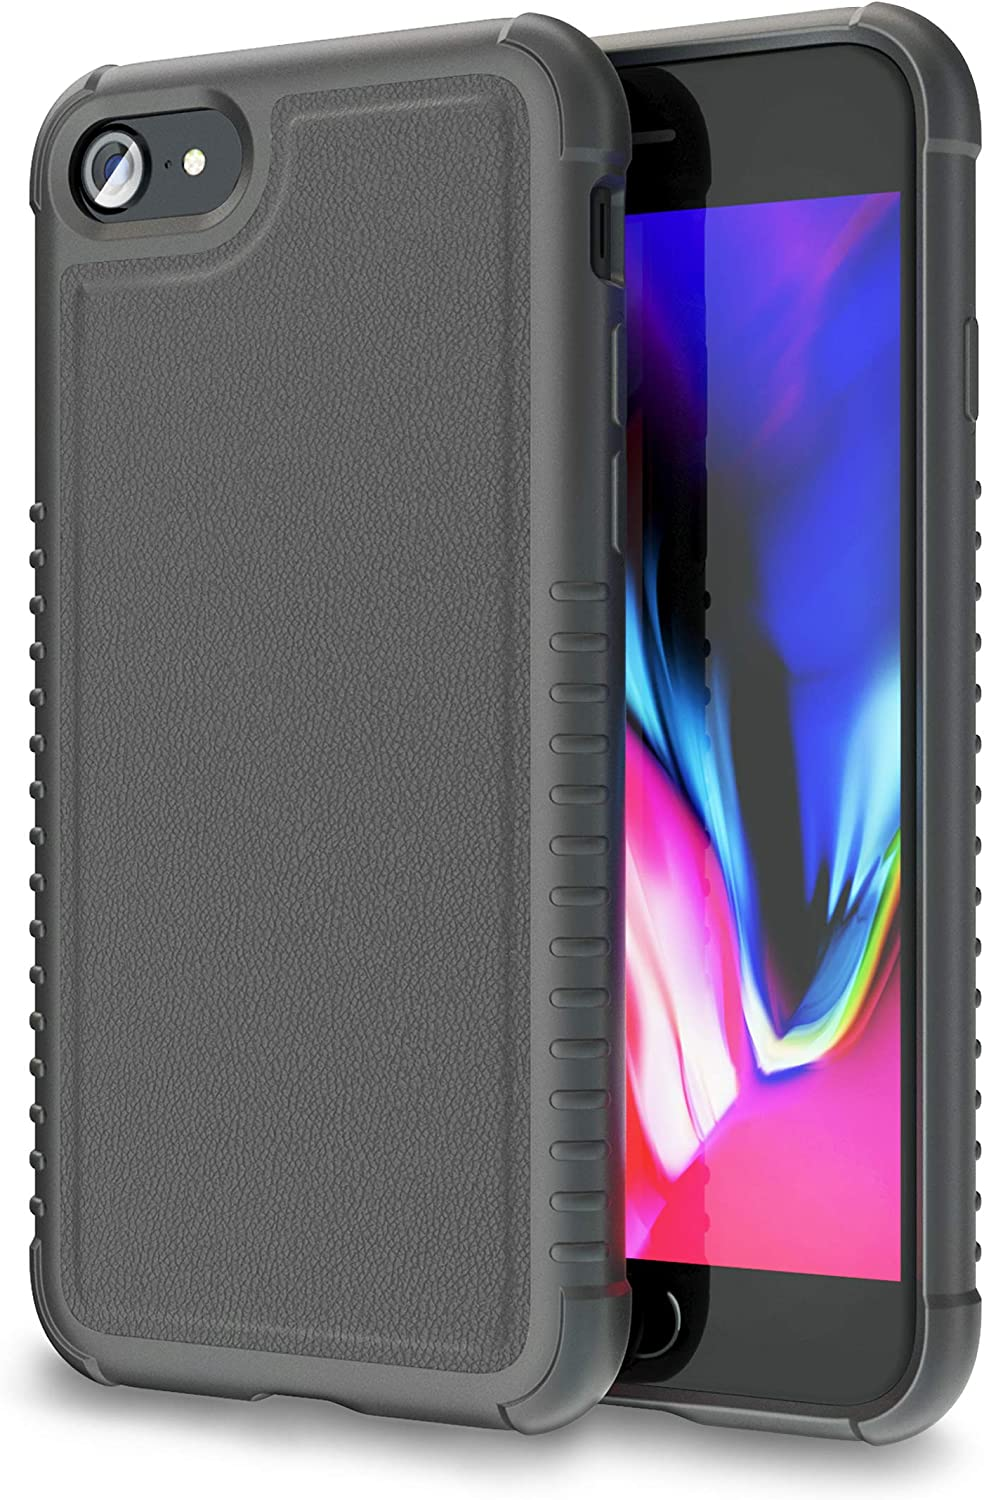 ORASE Stylish Armor Cases Designed for iPhone 7 Case, for iPhone 8 Case, for iPhone SE 2020 [Vegan Leather] [Military Grade Protection] Phone Case with Tactile Grip & AirBags (Jet Black)